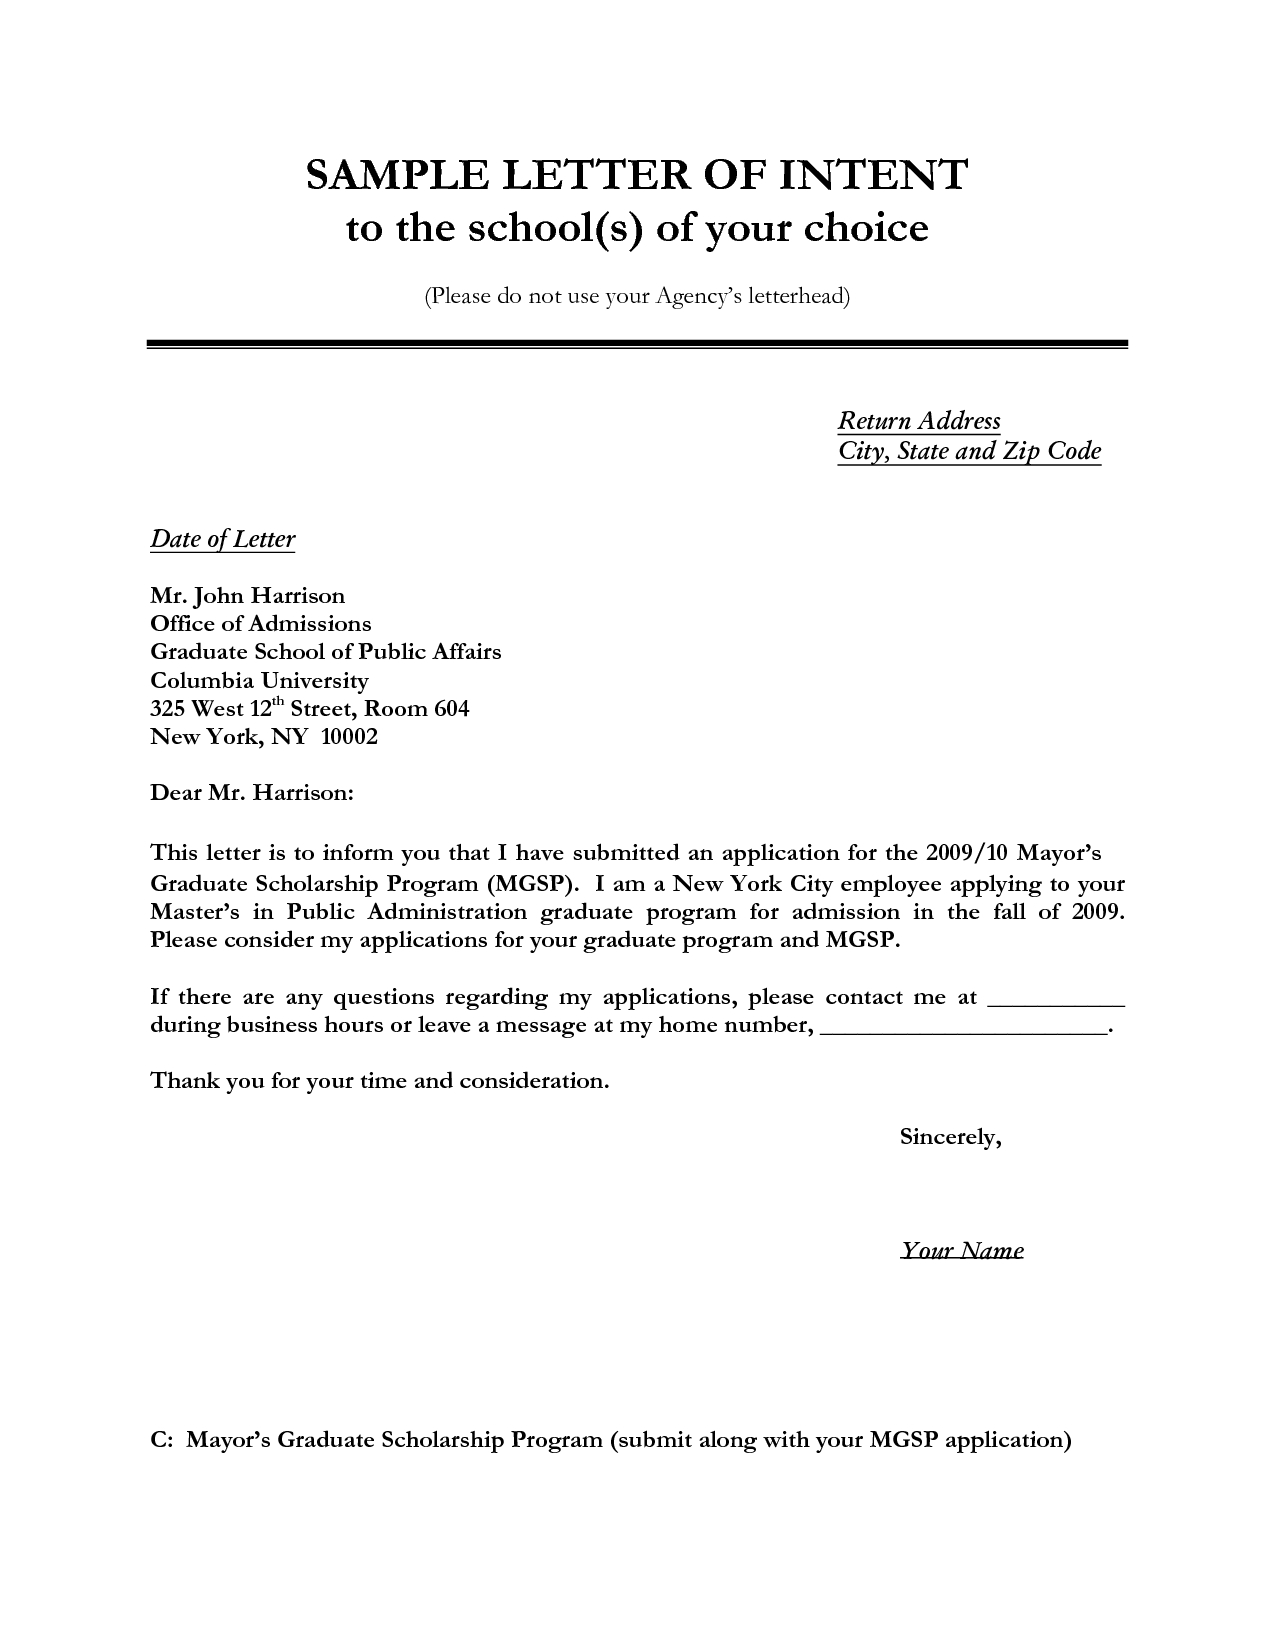 Refund Demand Letter Template - Letter Of Intent Sample